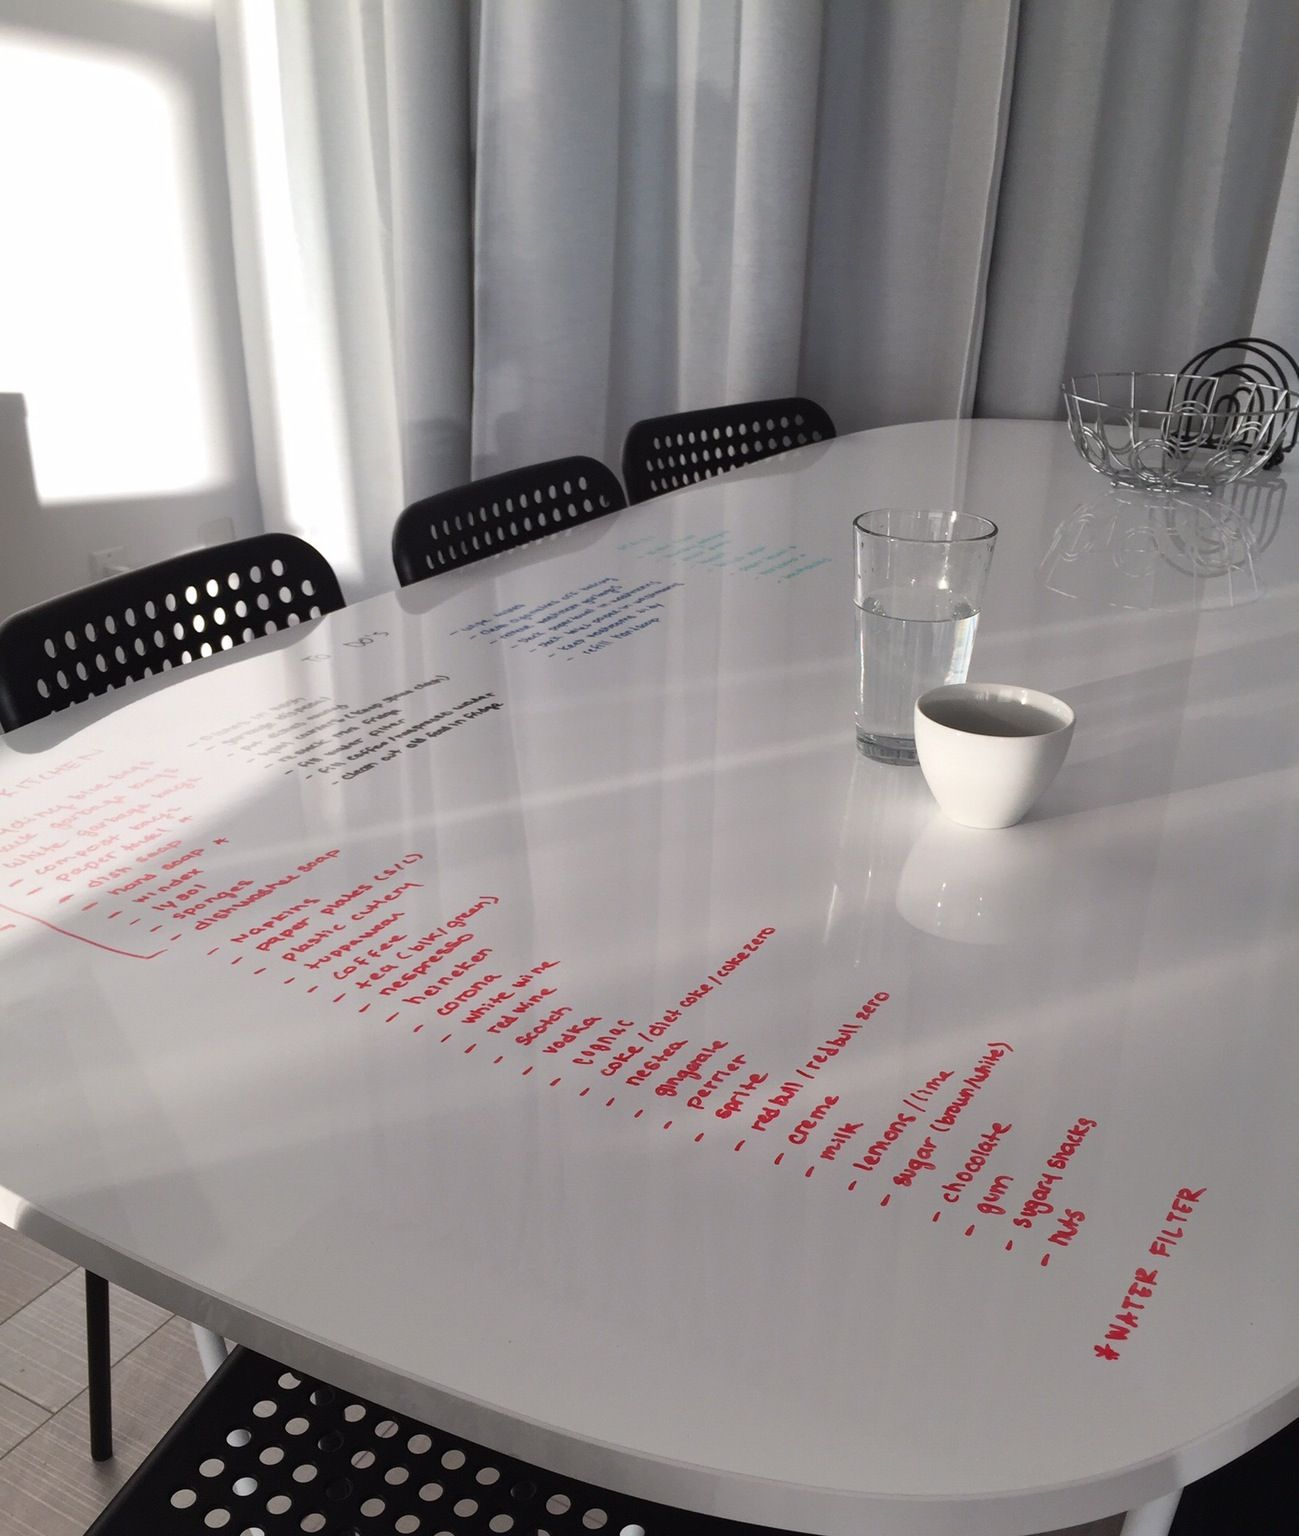 IKEA Oppeby Table: Multifunction Table Uses Whiteboard As Table Top